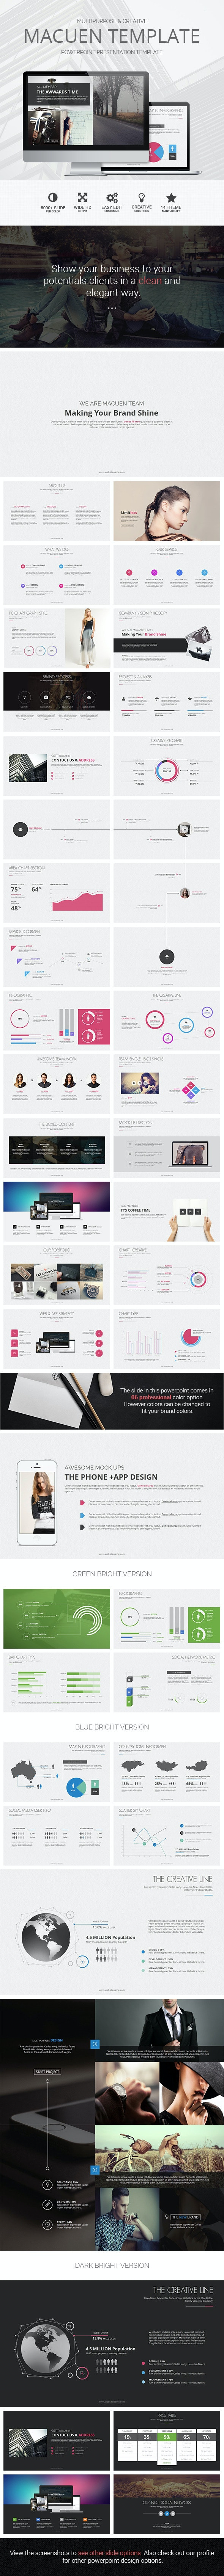 MACUEN - Ultimate Presentation Template - Business PowerPoint Templates